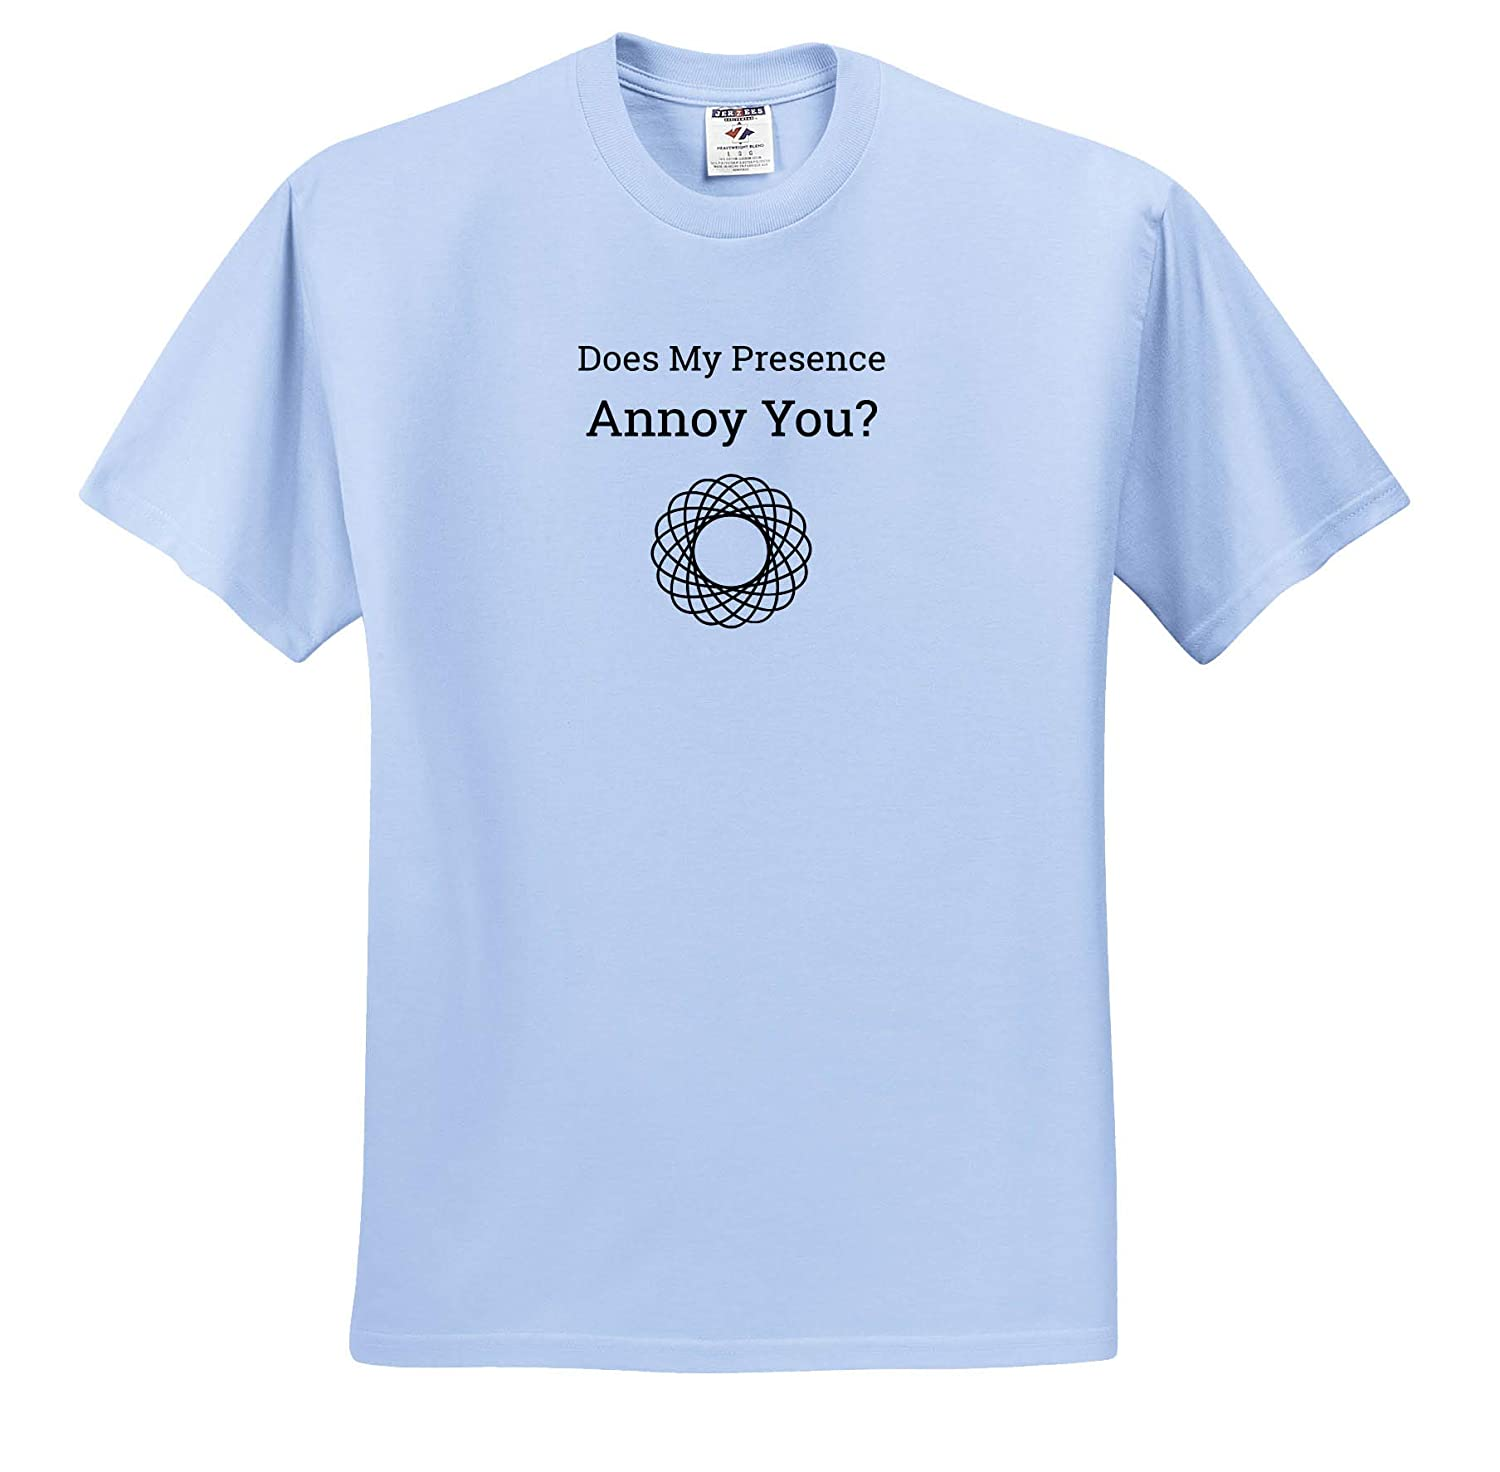 3dRose Carrie Merchant Quote Image of Does My Presence Annoy You T-Shirts